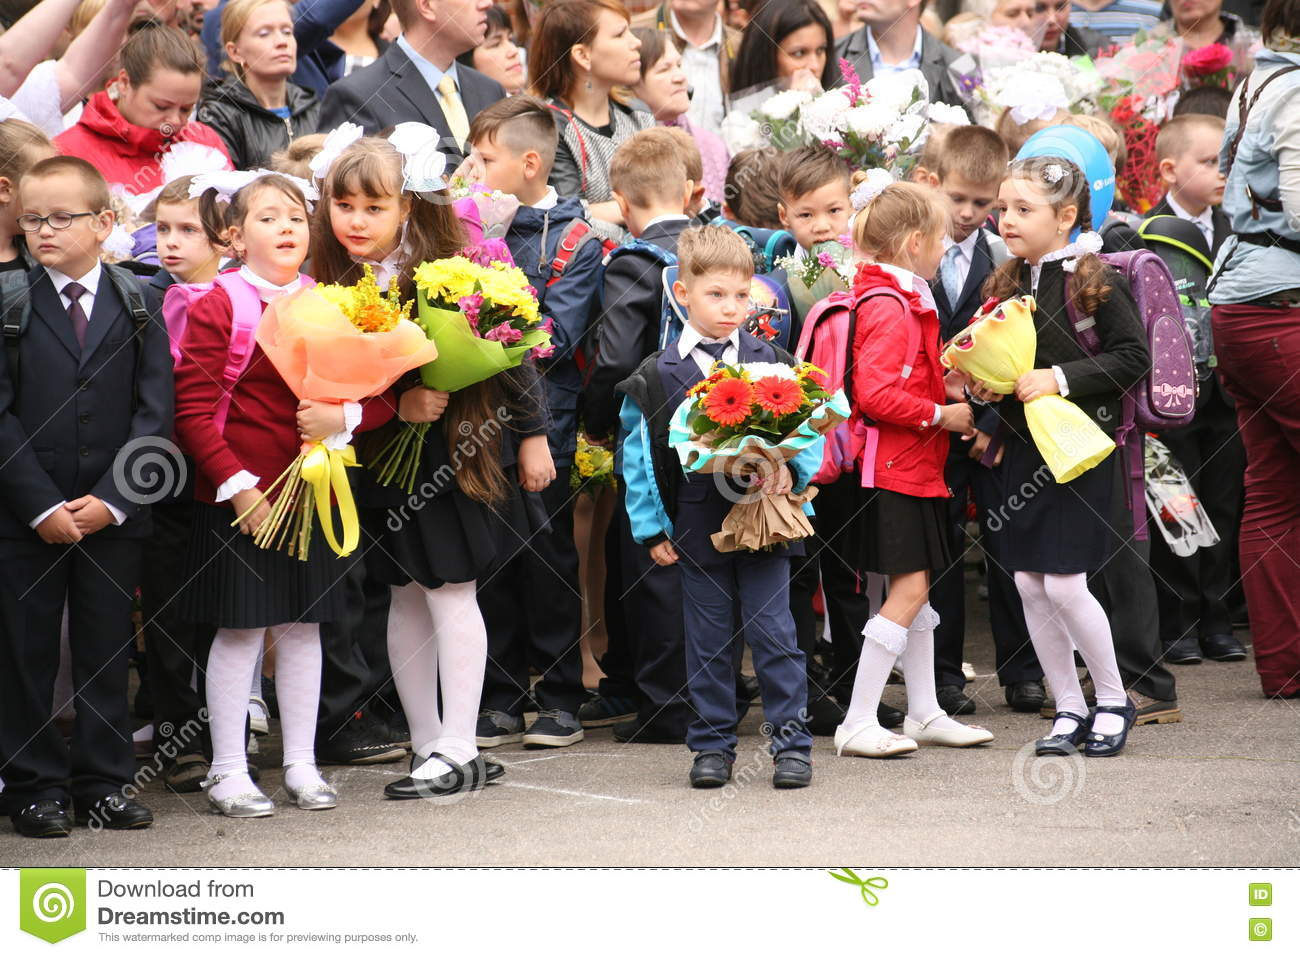 Holiday Day of Knowledge - September 1 and Teachers Day - October 5